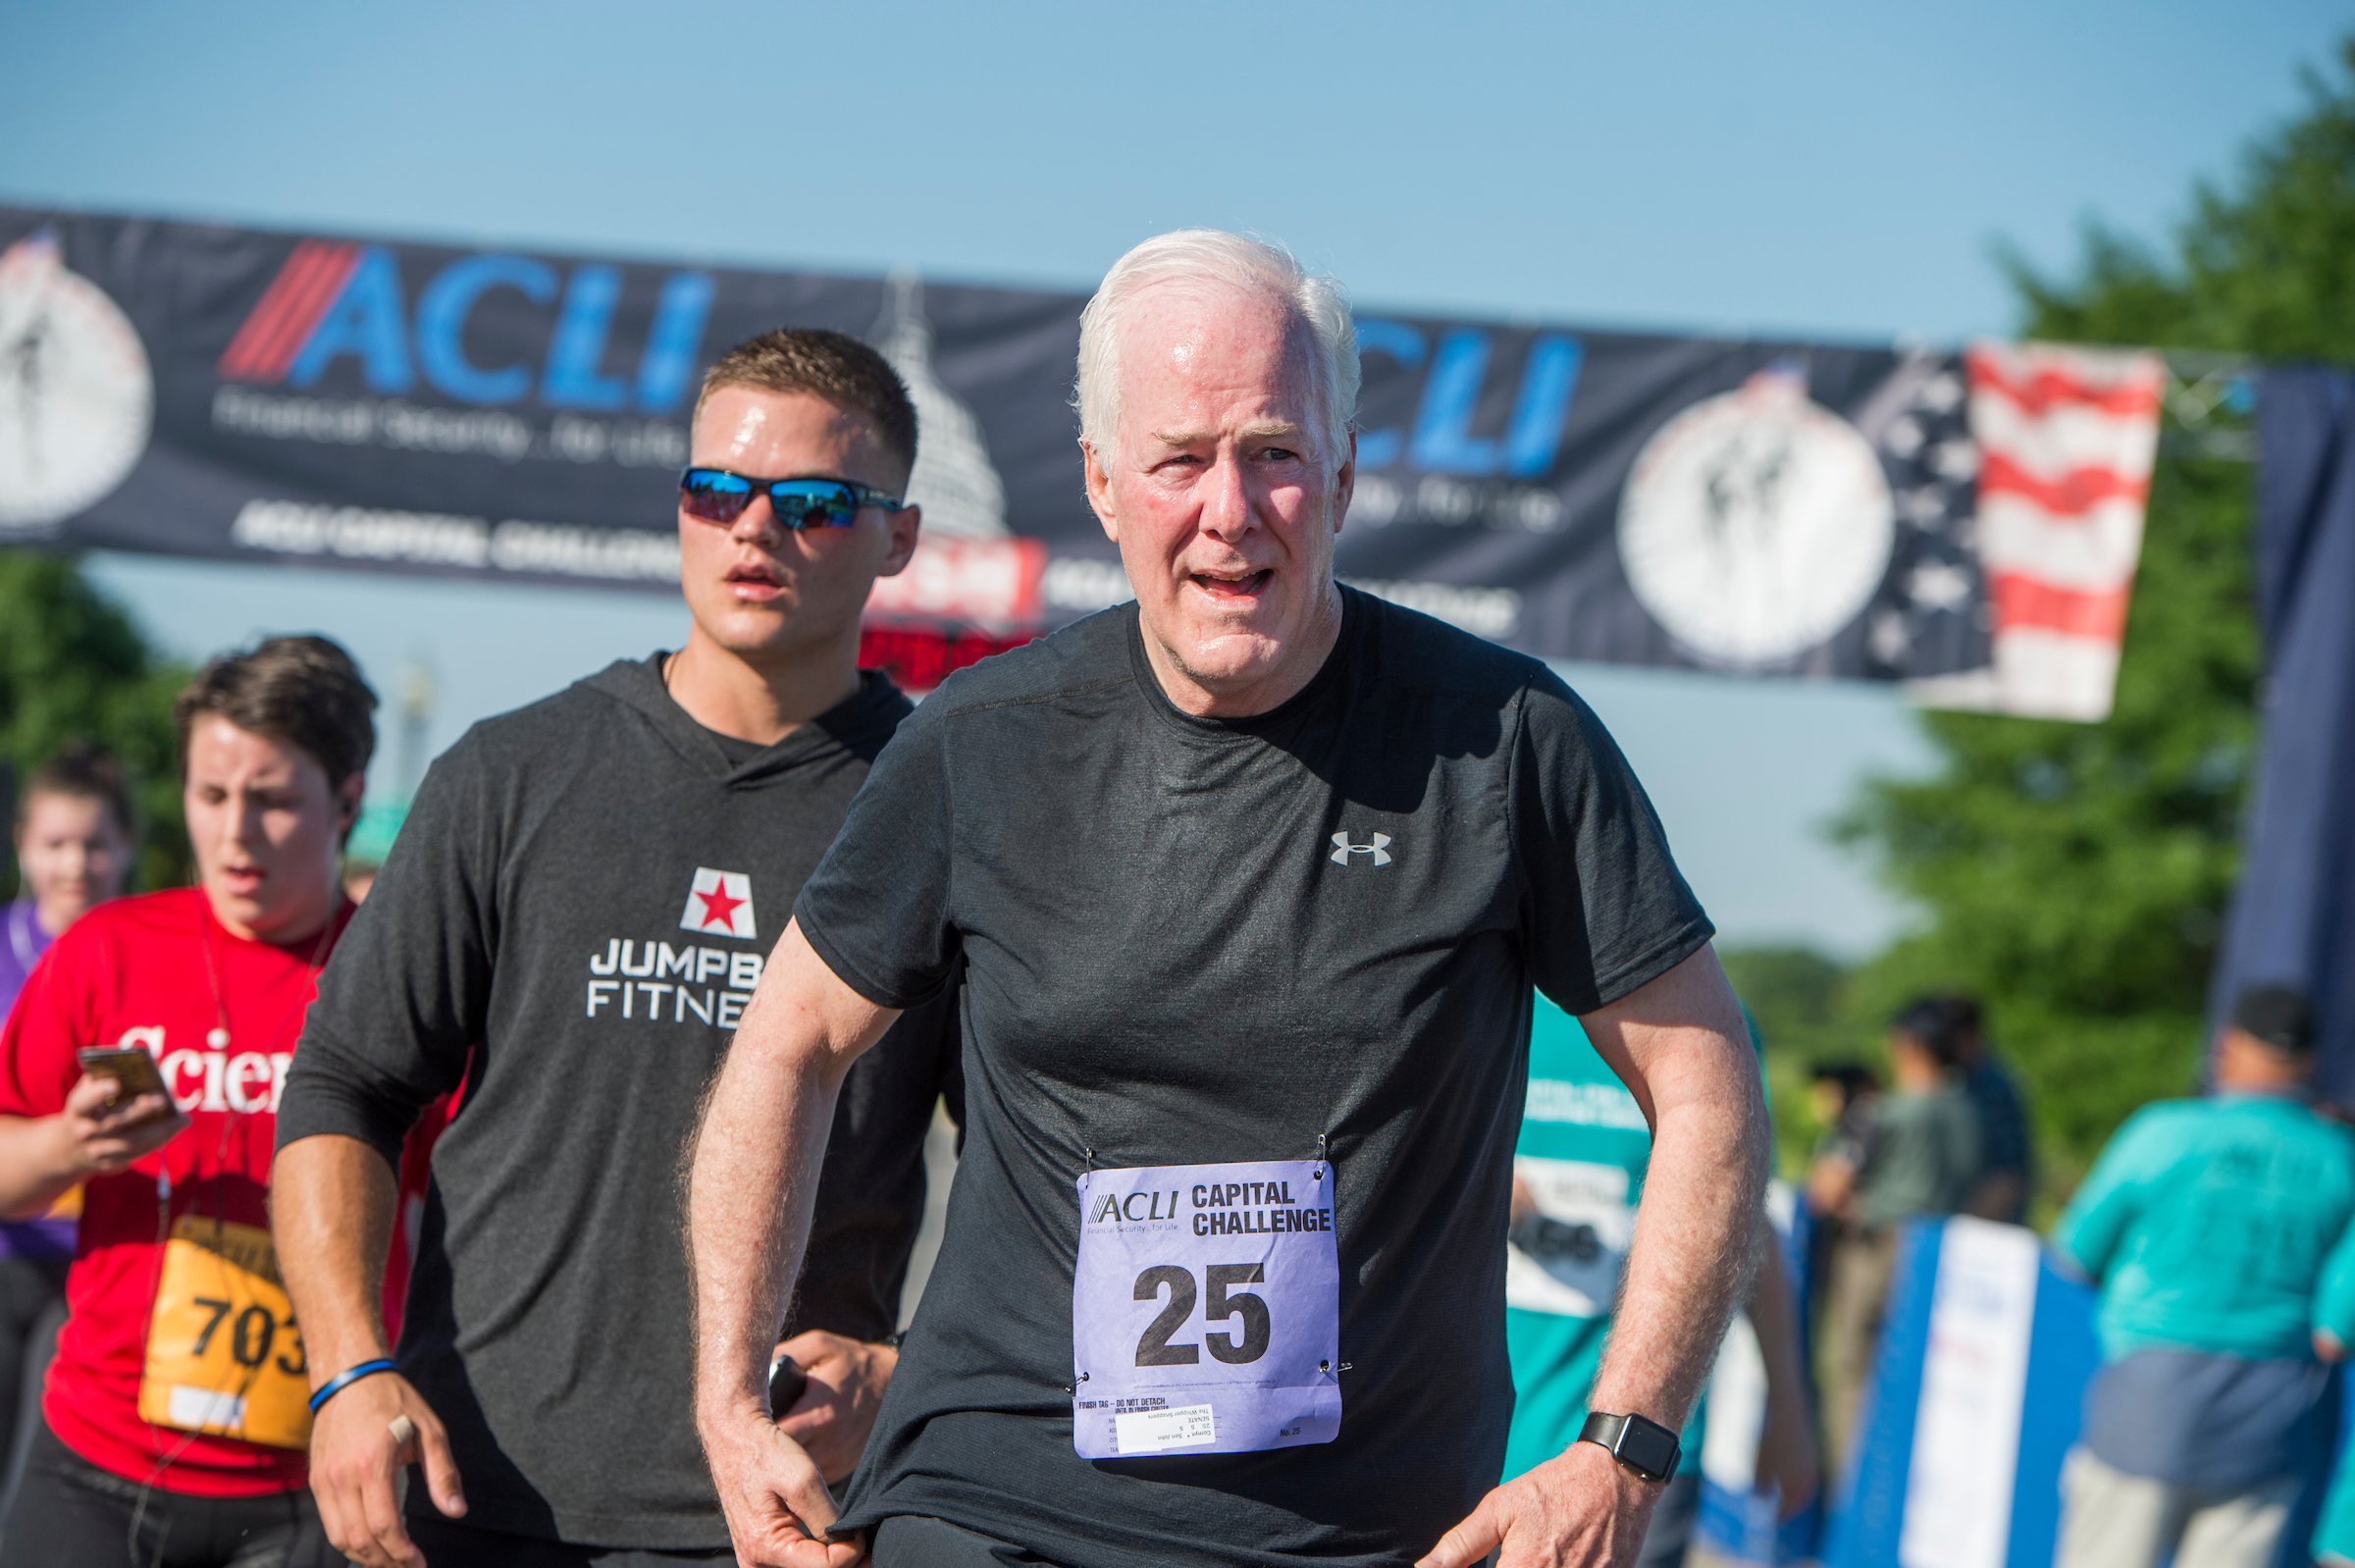 UNITED STATES - MAY 17: Sen. John Cornyn, R-Texas, runs in the ACLI Capital Challenge 3 Mile Team Race in Anacostia Park, May 17, 2017. (Photo By Tom Williams/CQ Roll Call)